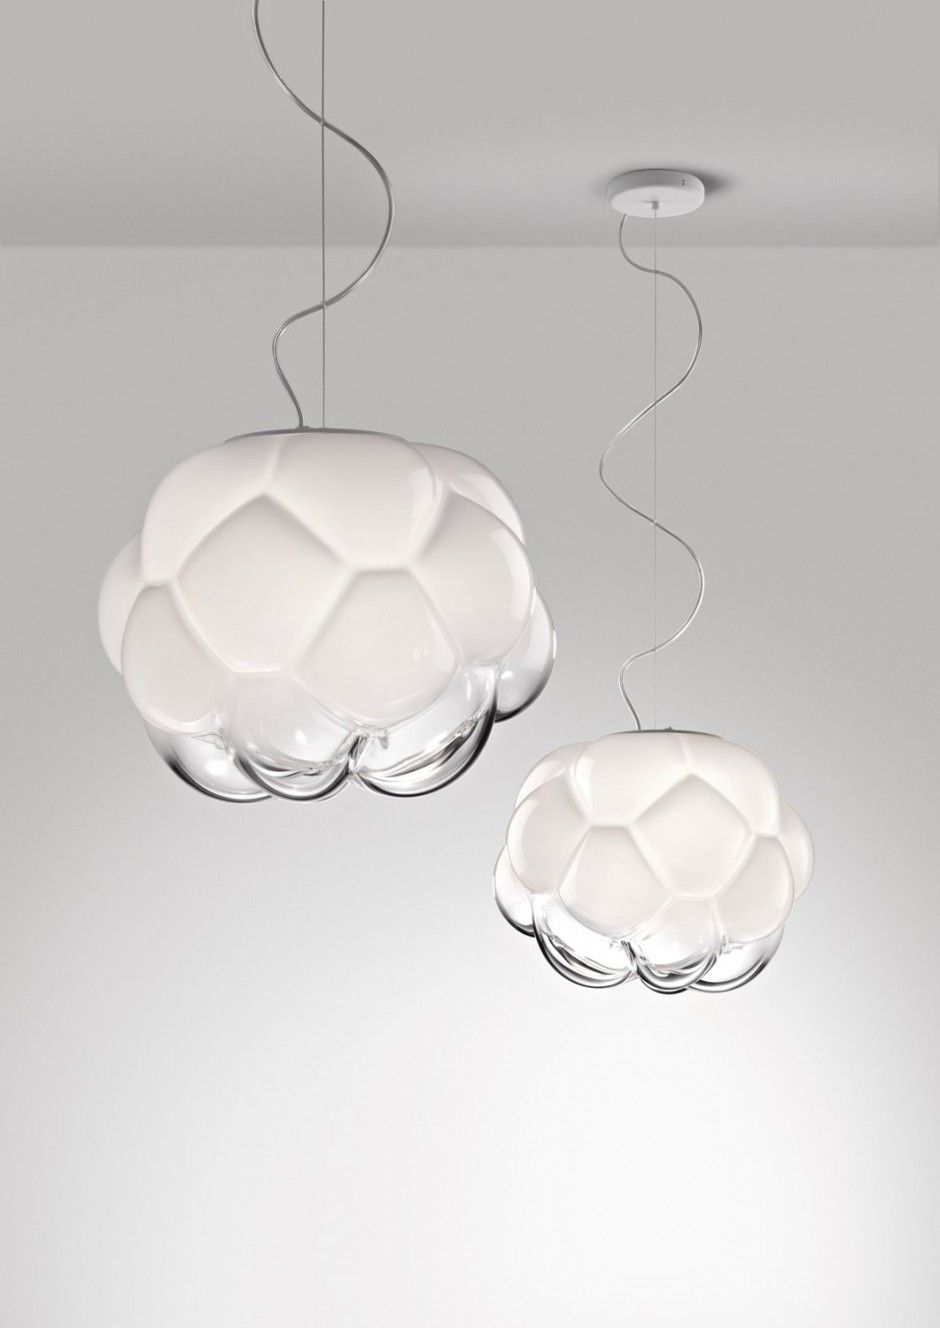 worclip cloudy by mathieu lehanneur for fabbian the cloudy cloud